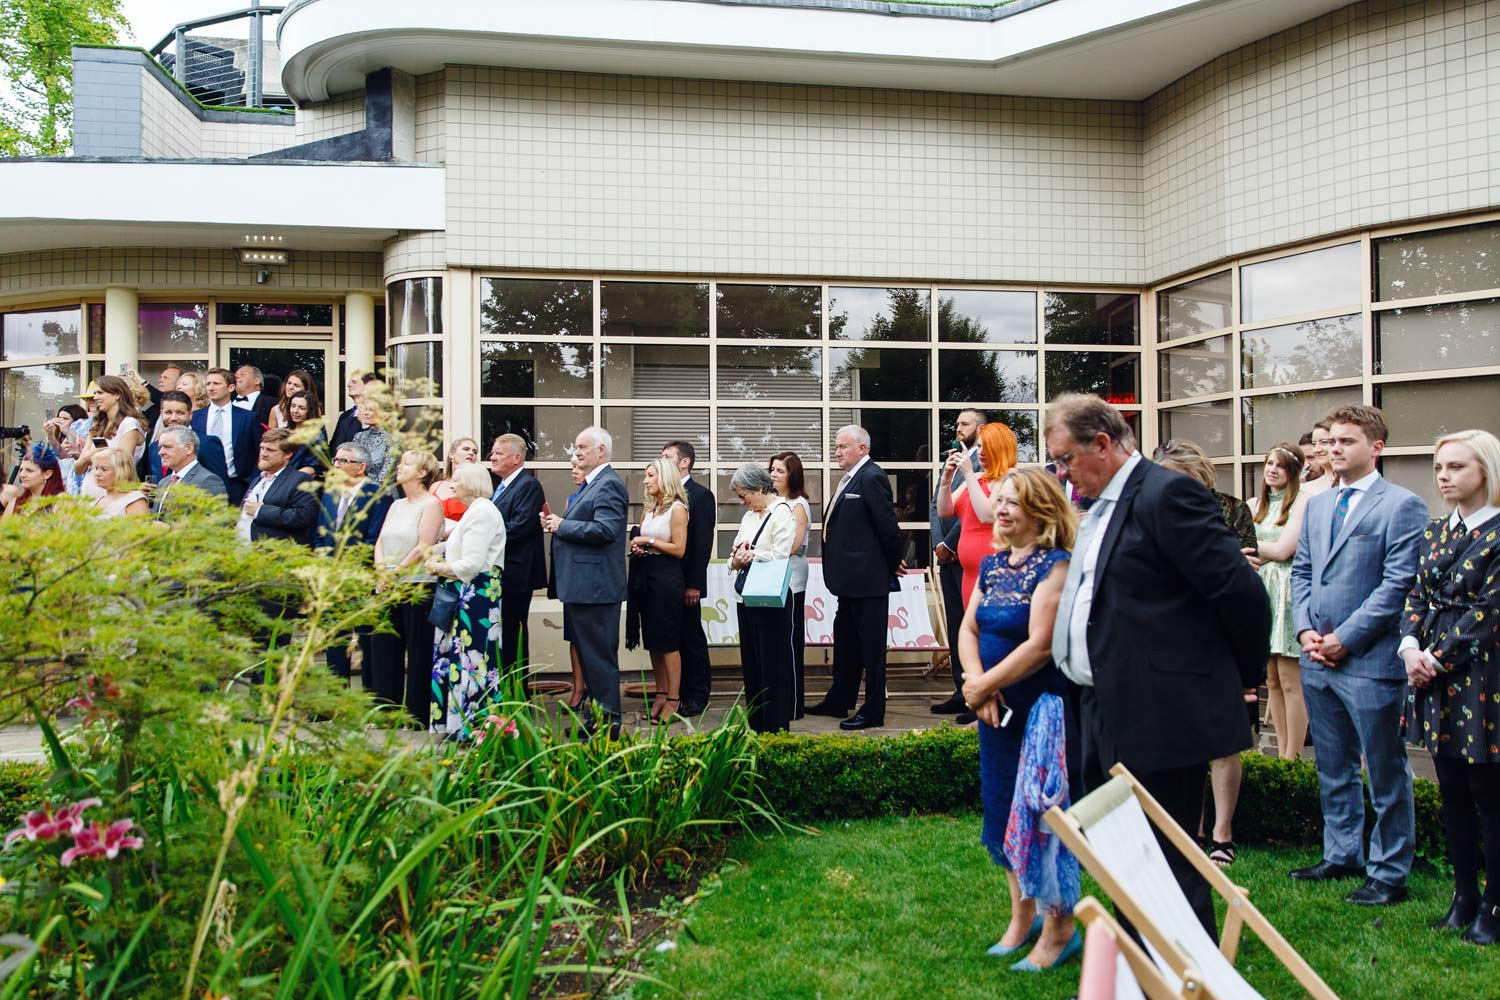 Guests watch the wedding ceremony at the Roof Gardens in Kensington - London wedding photographer